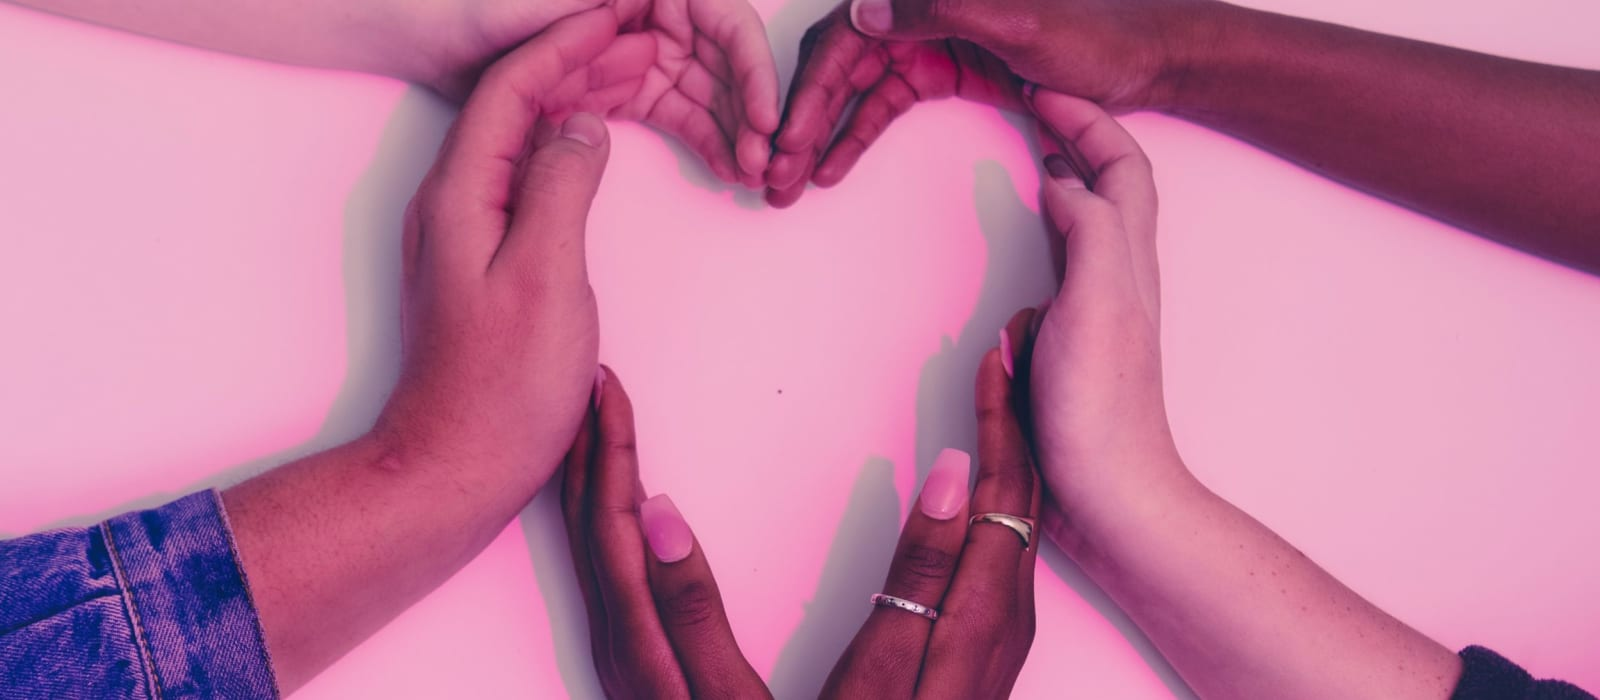 hands together creating a heart